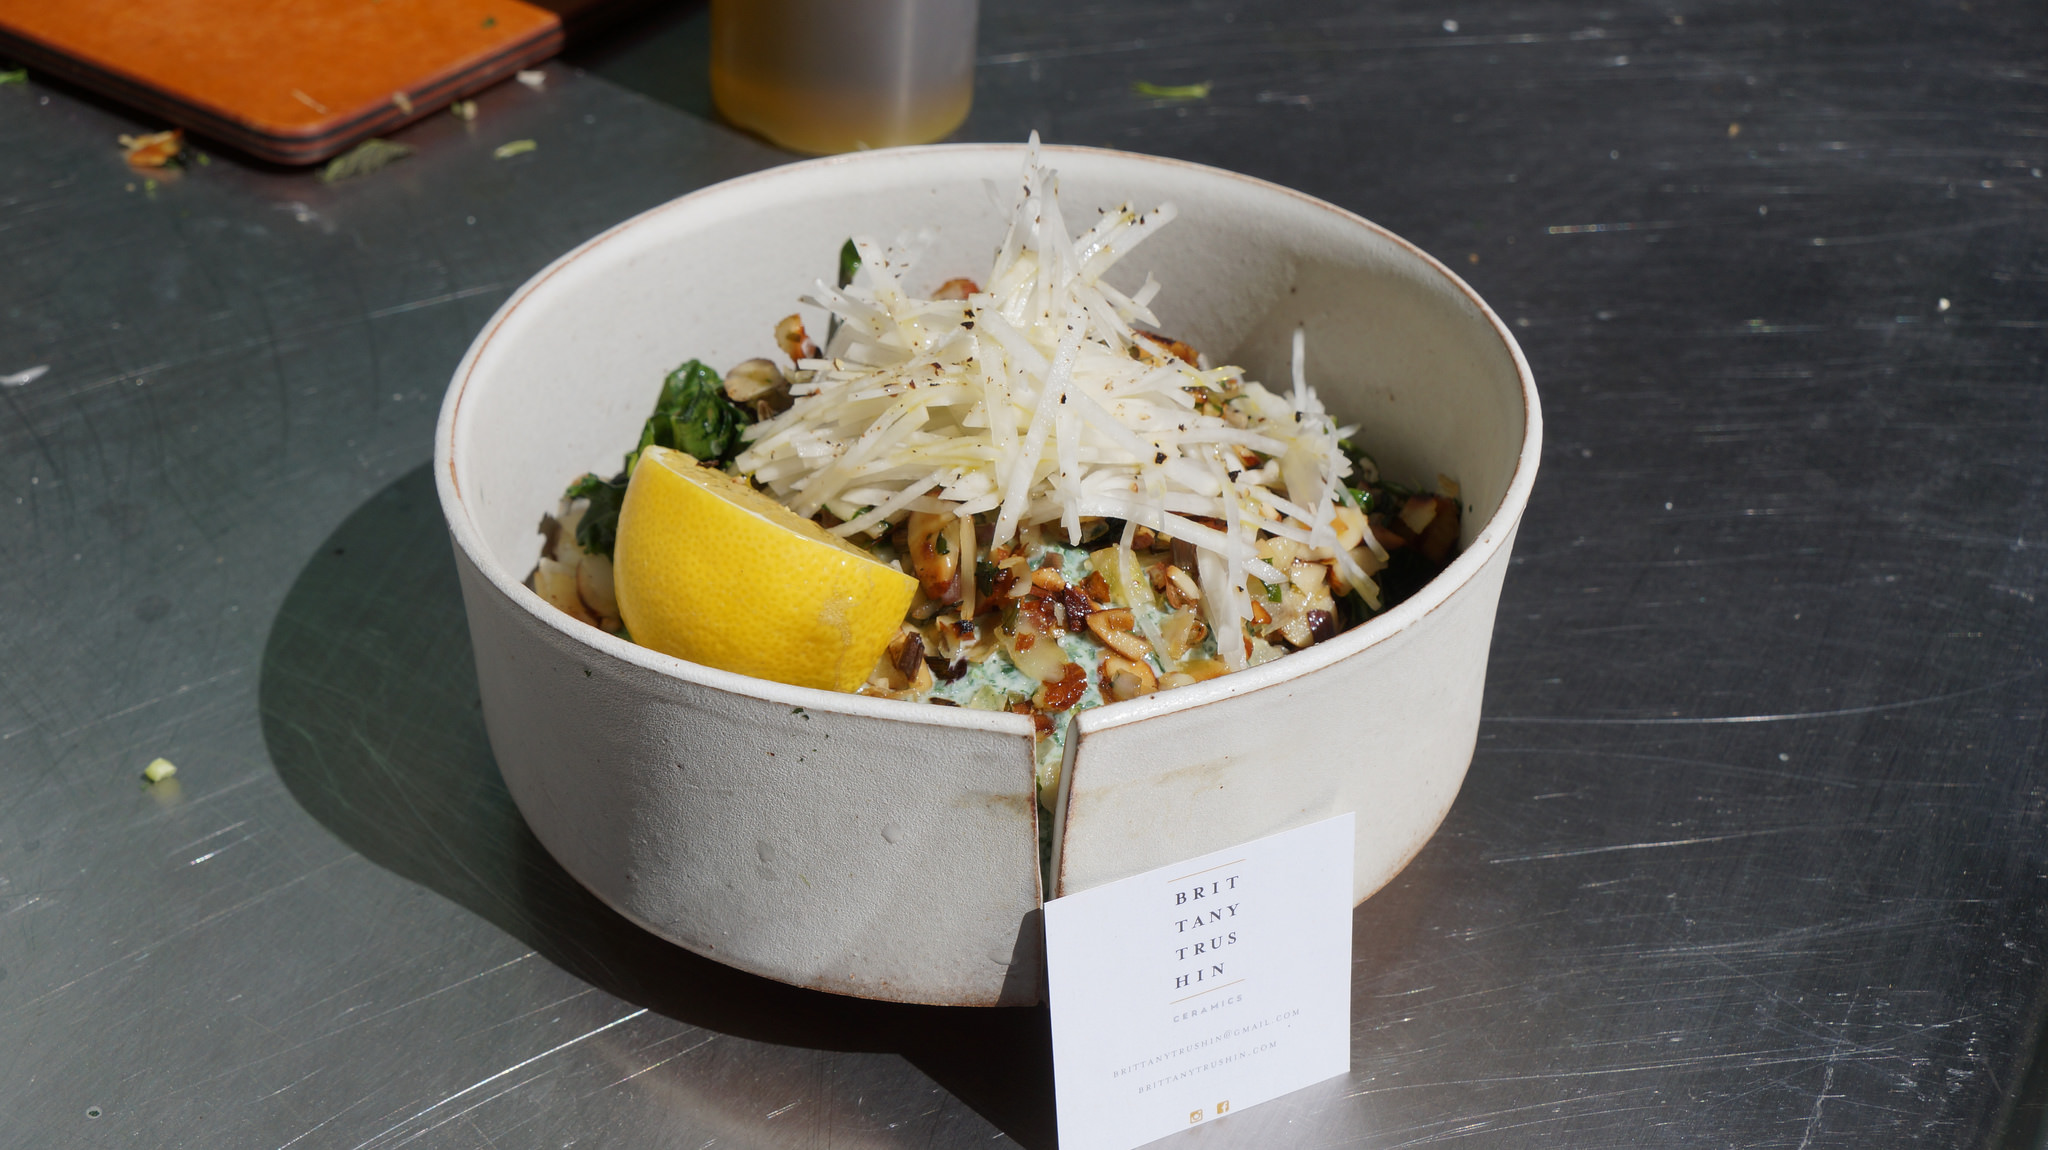 Wild rice salad in bowl